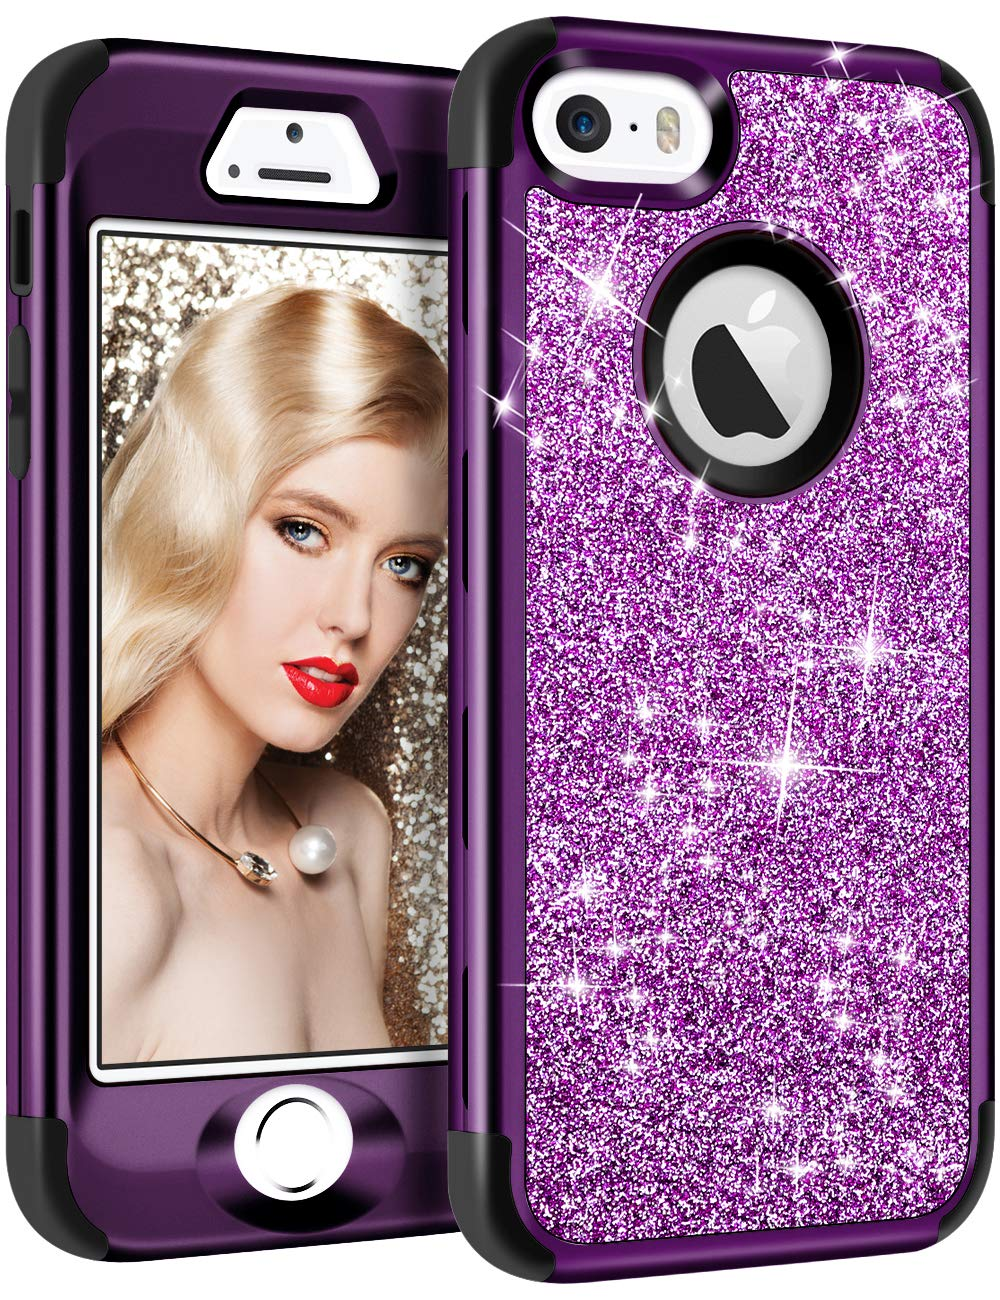 Vofolen Case for iPhone SE Case iPhone 5S Case Glitter Bling Shiny Heavy Duty Protection Full-Body Protective Cover Hard Shell Hybrid Silicone Rubber Armor + Front Bumper for iPhone 5 5S SE Purple